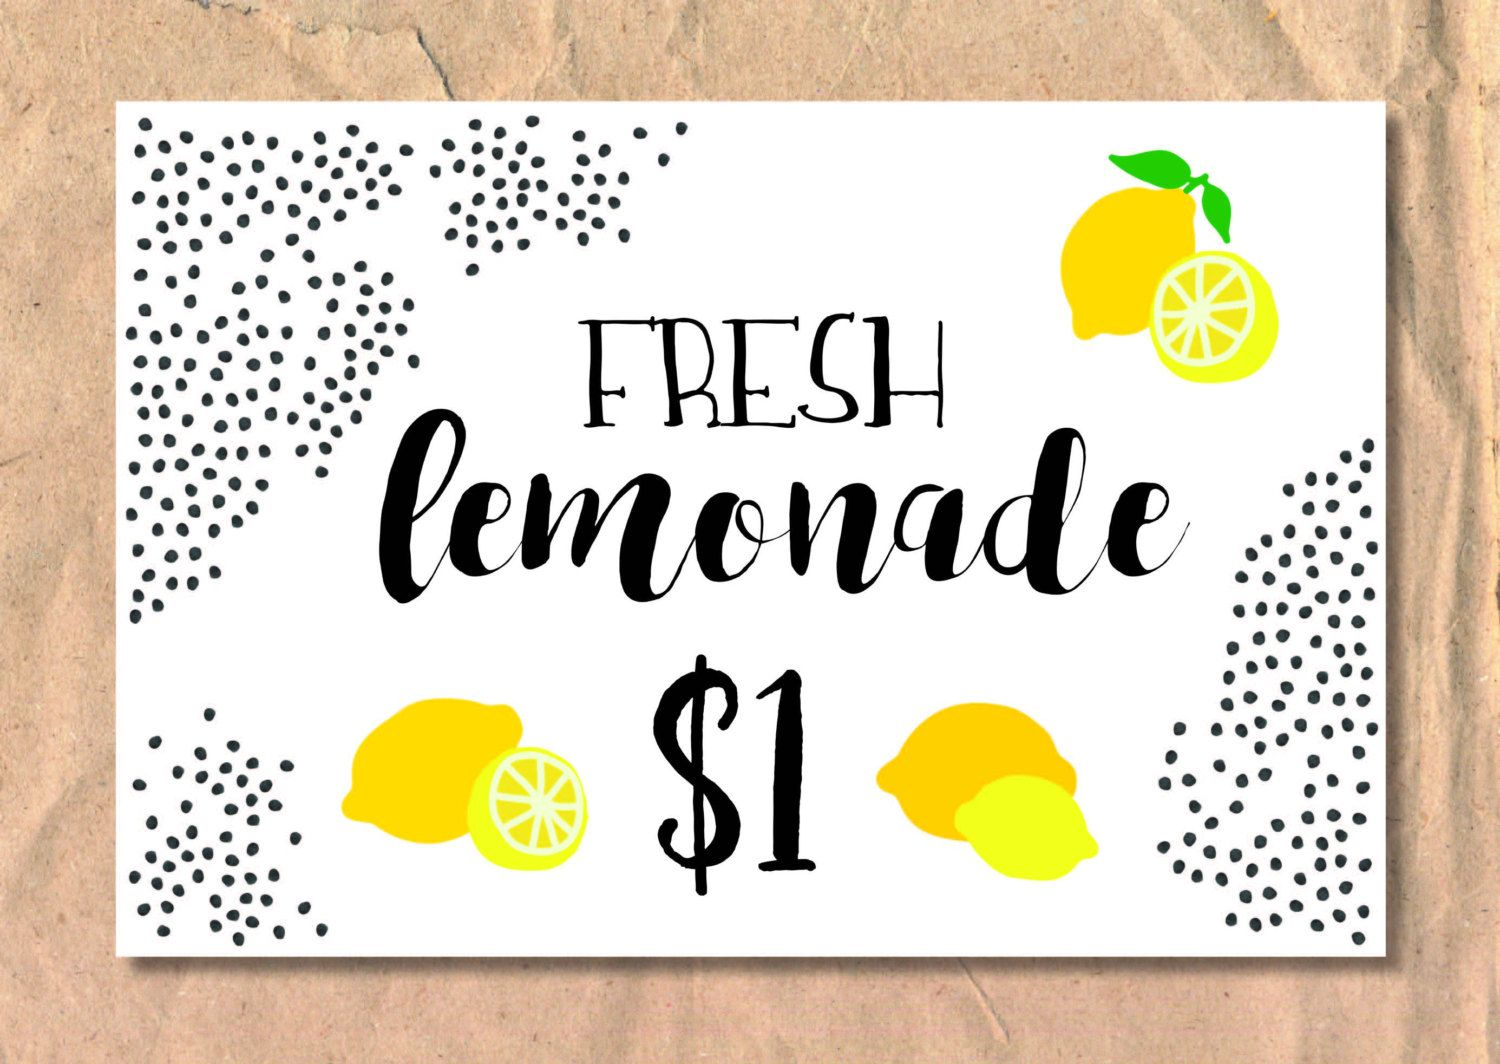 Lemonade Stand Poster Designs : Lemonade stand sign poster by frelladesigns on etsy